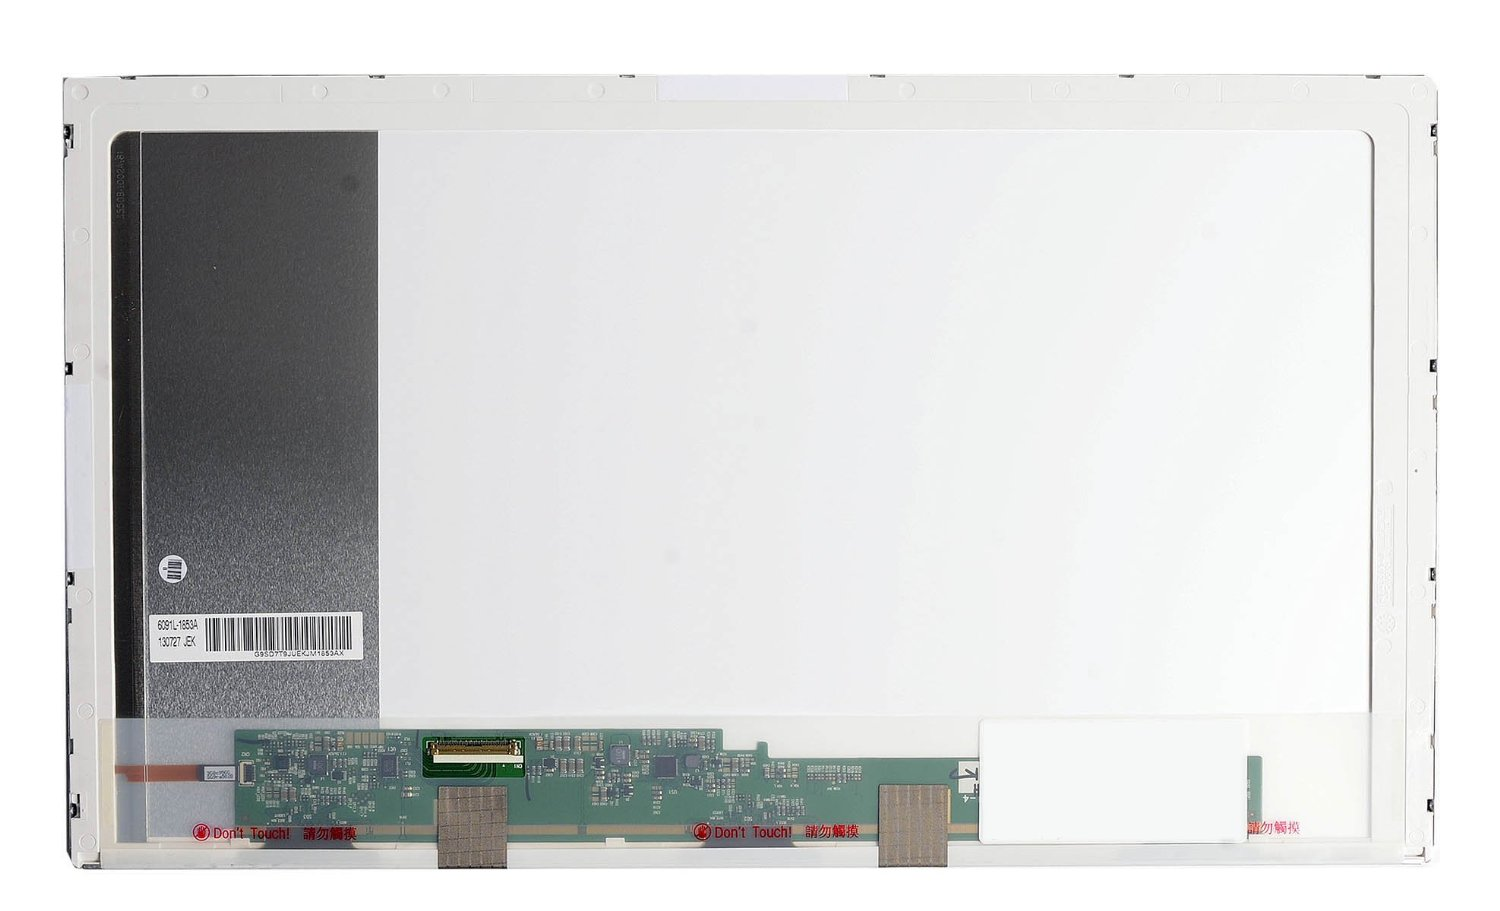 QuYing Laptop LCD Screen for ASUS K73 K75 K73E K73S K73B K75E K75VM K75DE Series quying laptop lcd screen compatible ltn156at05 h01 ltn156at09 h03 ltn156at09 h02 ltn156at05 301 ltn156at03 001 ltn156at02 a04